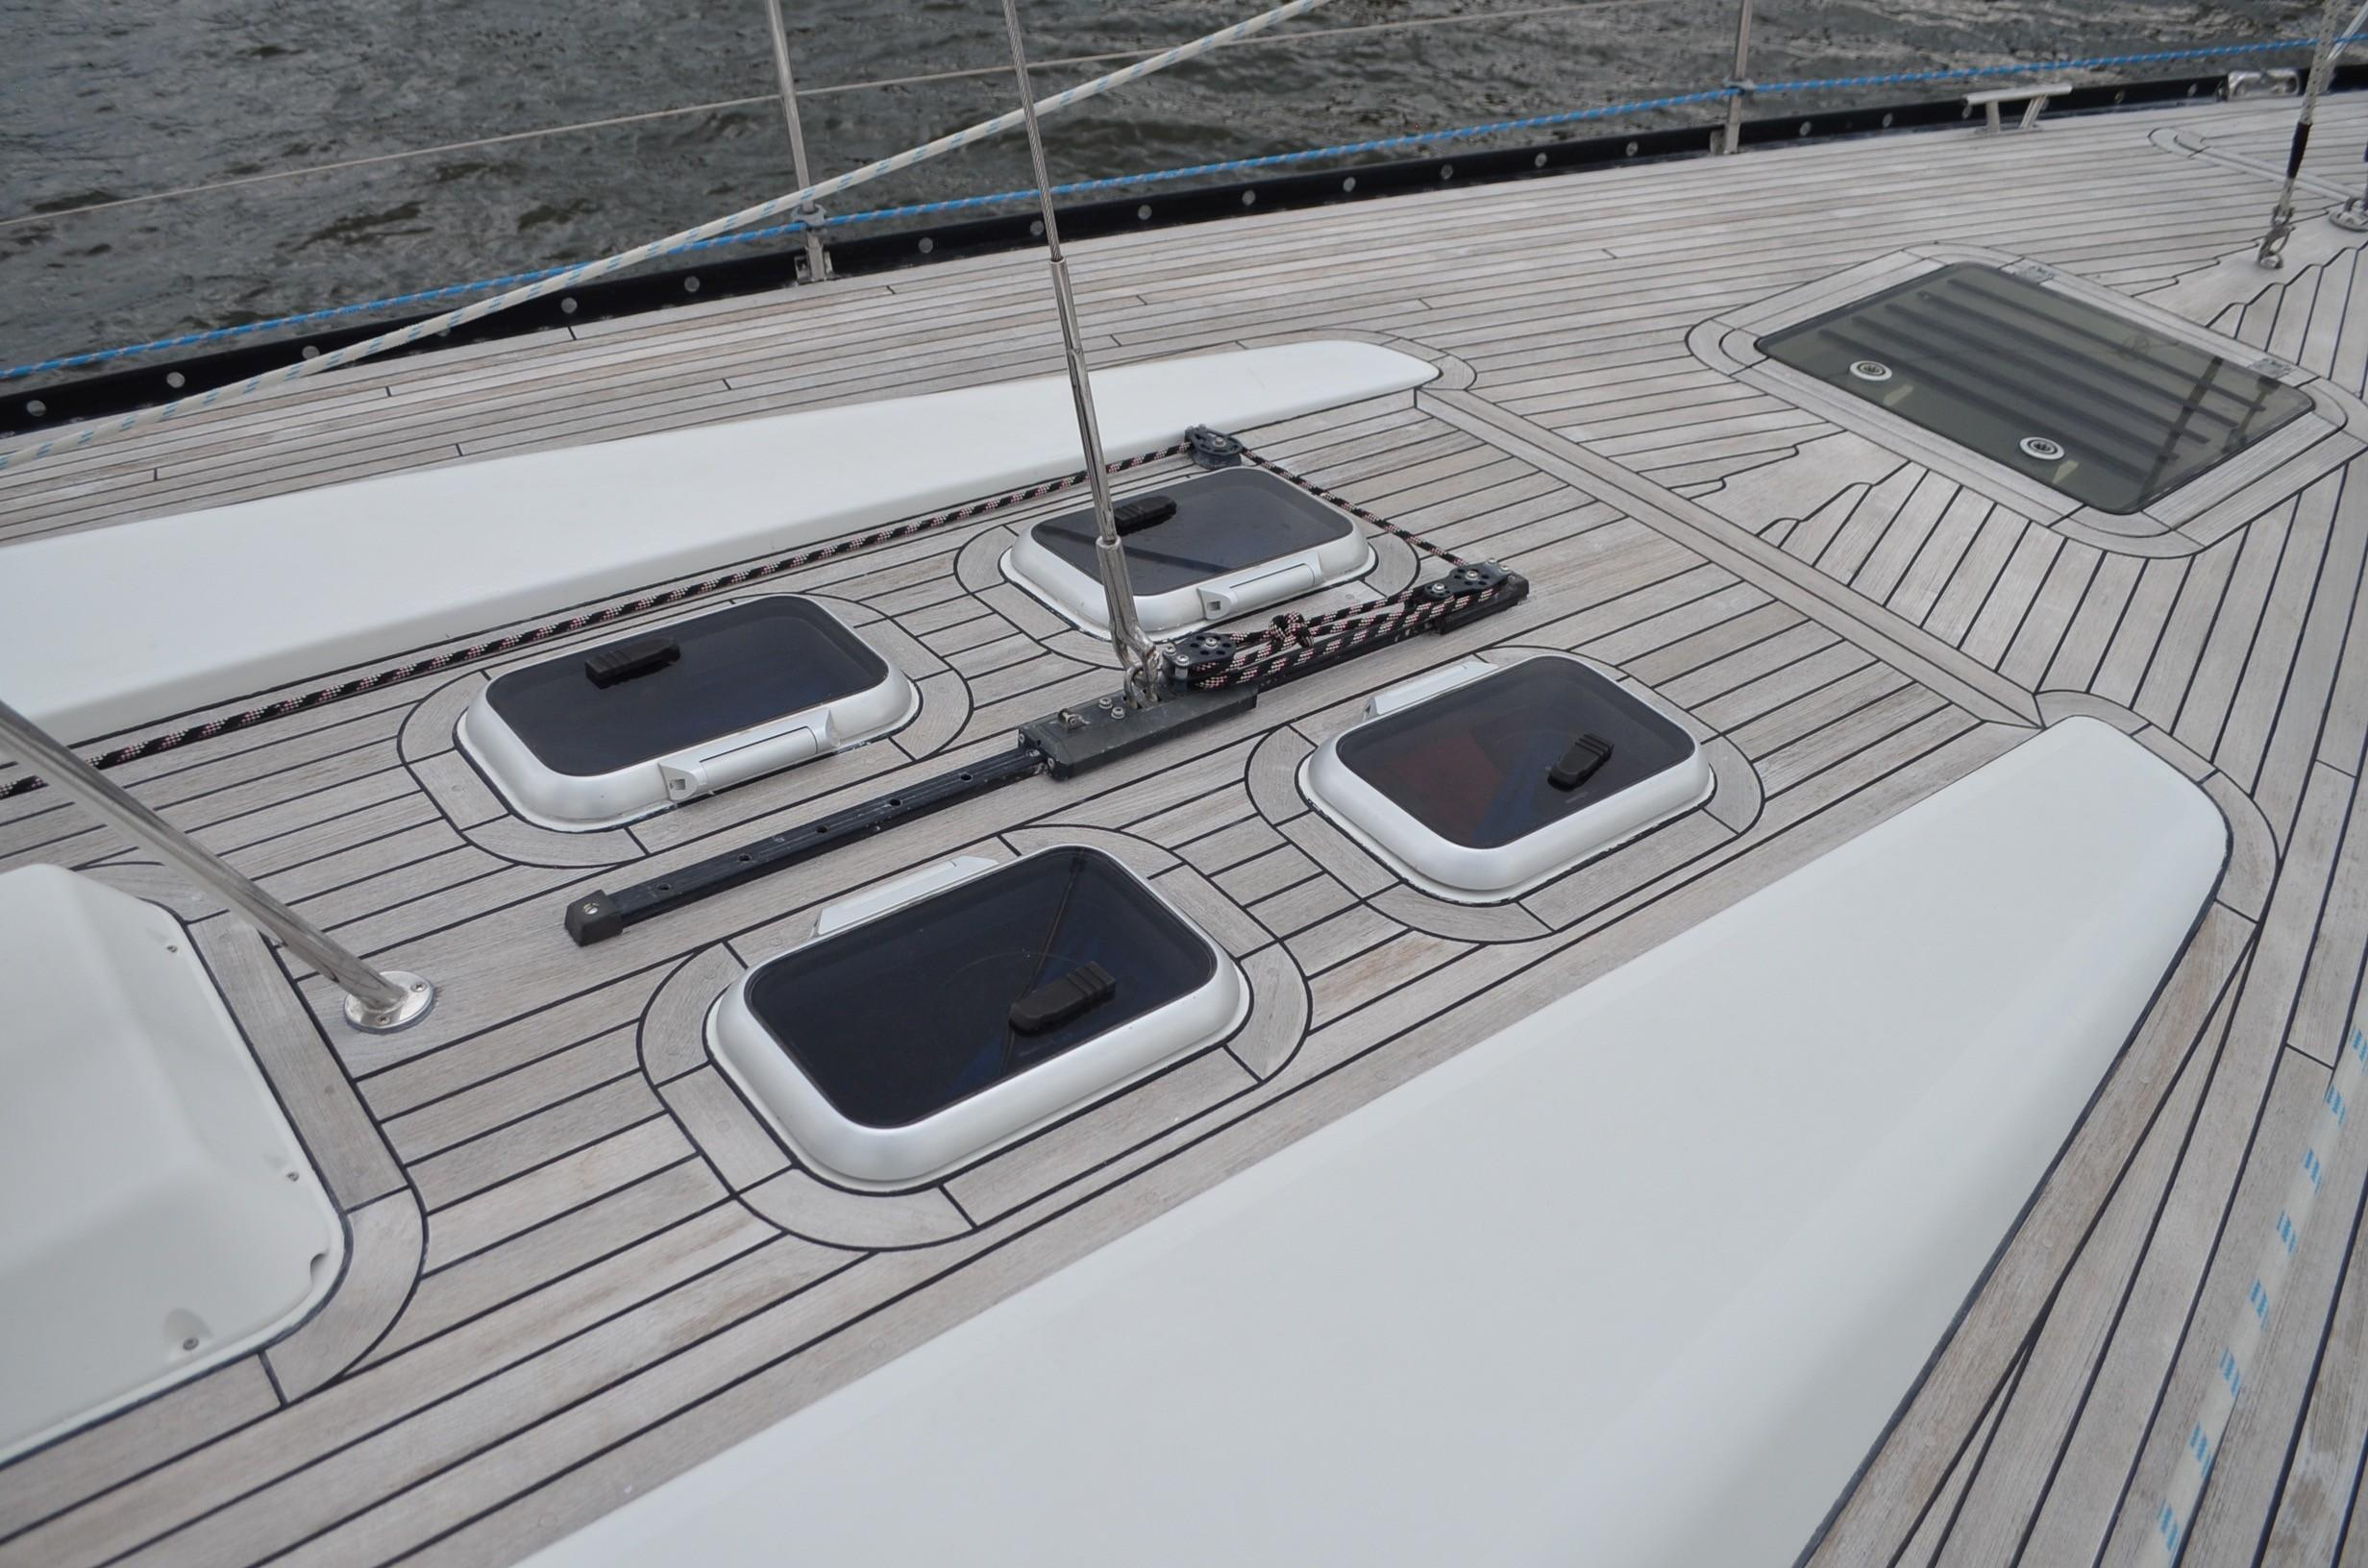 I 4531 SK Knot 10 Yacht Sales